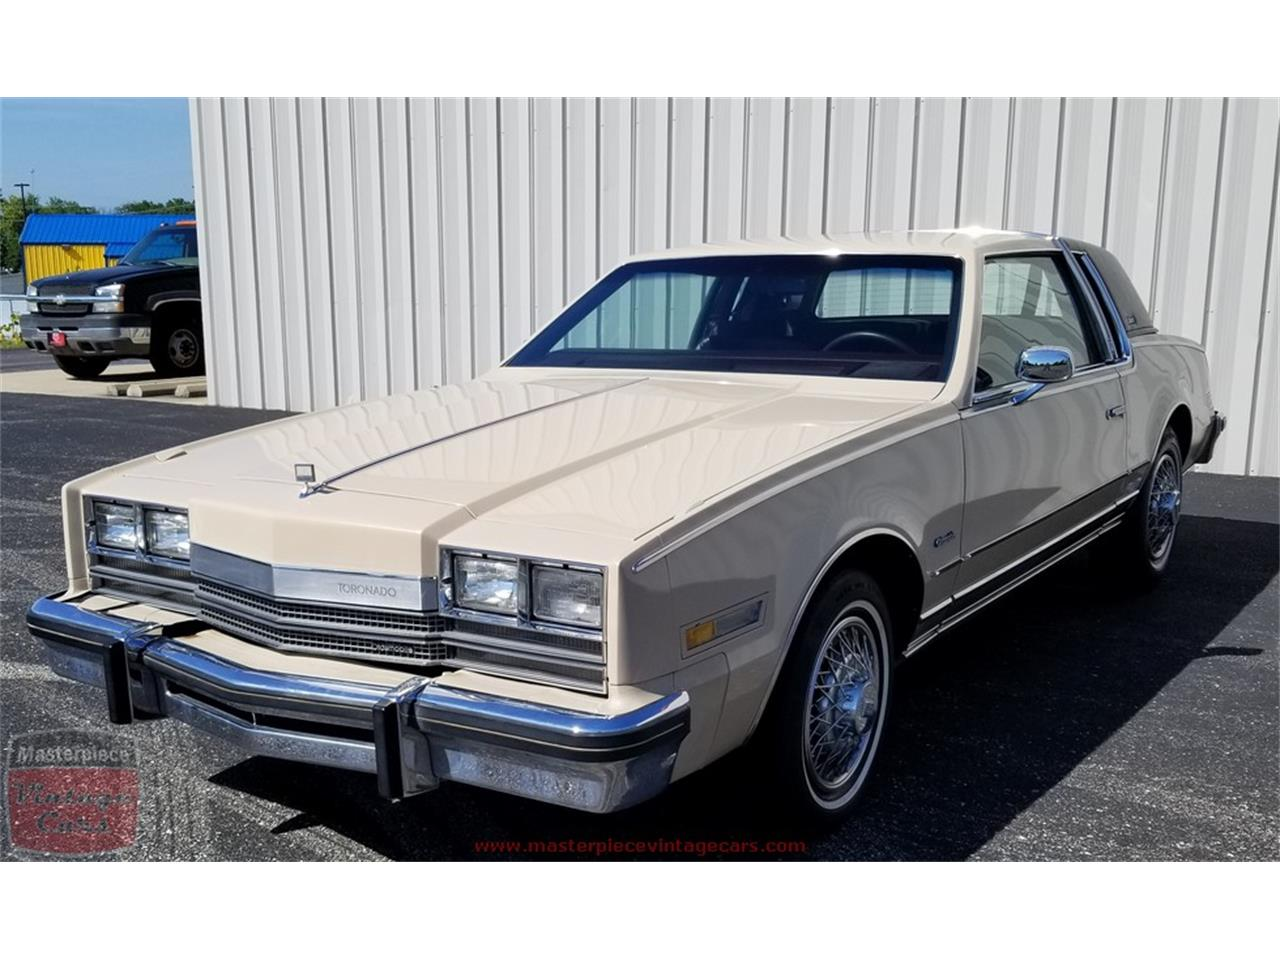 Large Picture of 1985 Oldsmobile Toronado located in Whiteland Indiana Offered by Masterpiece Vintage Cars - Q4ZA